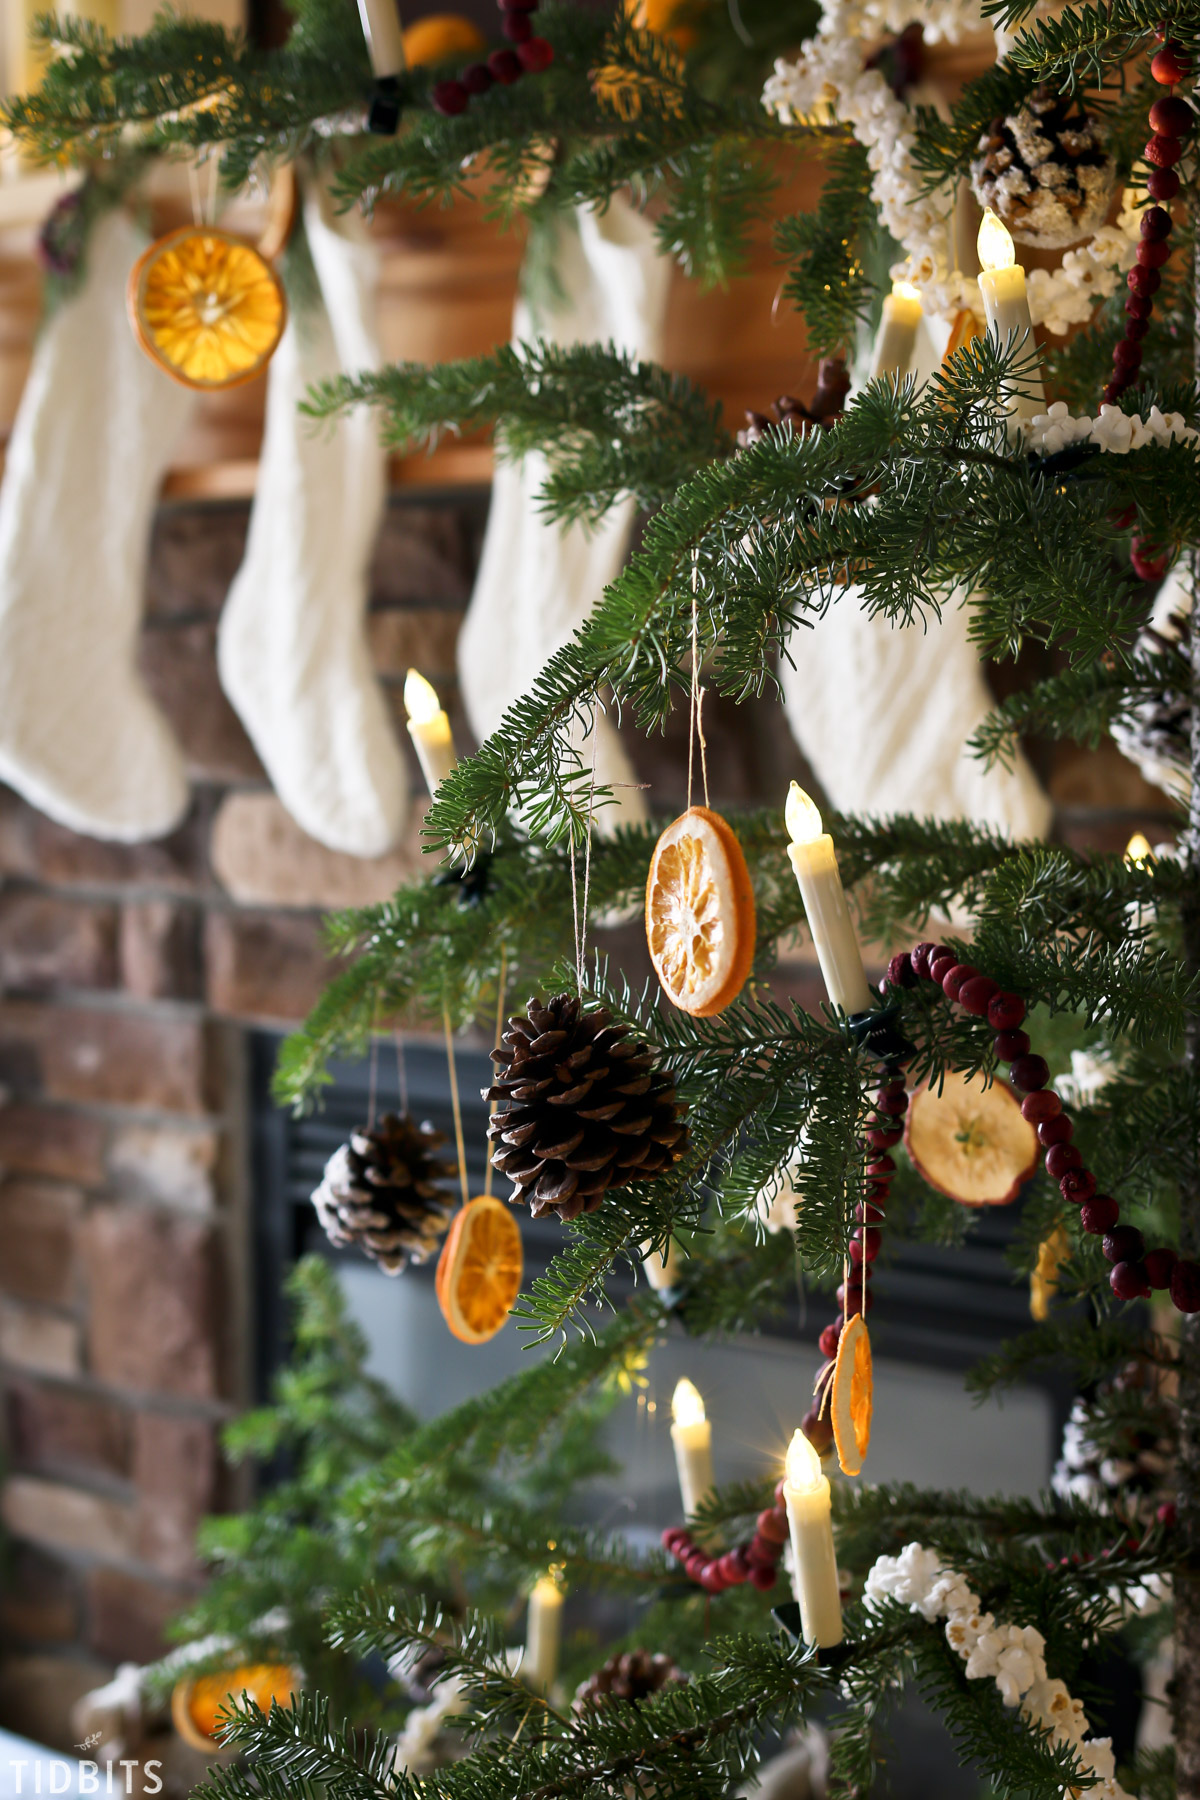 Natural Christmas Decorations - Tidbits